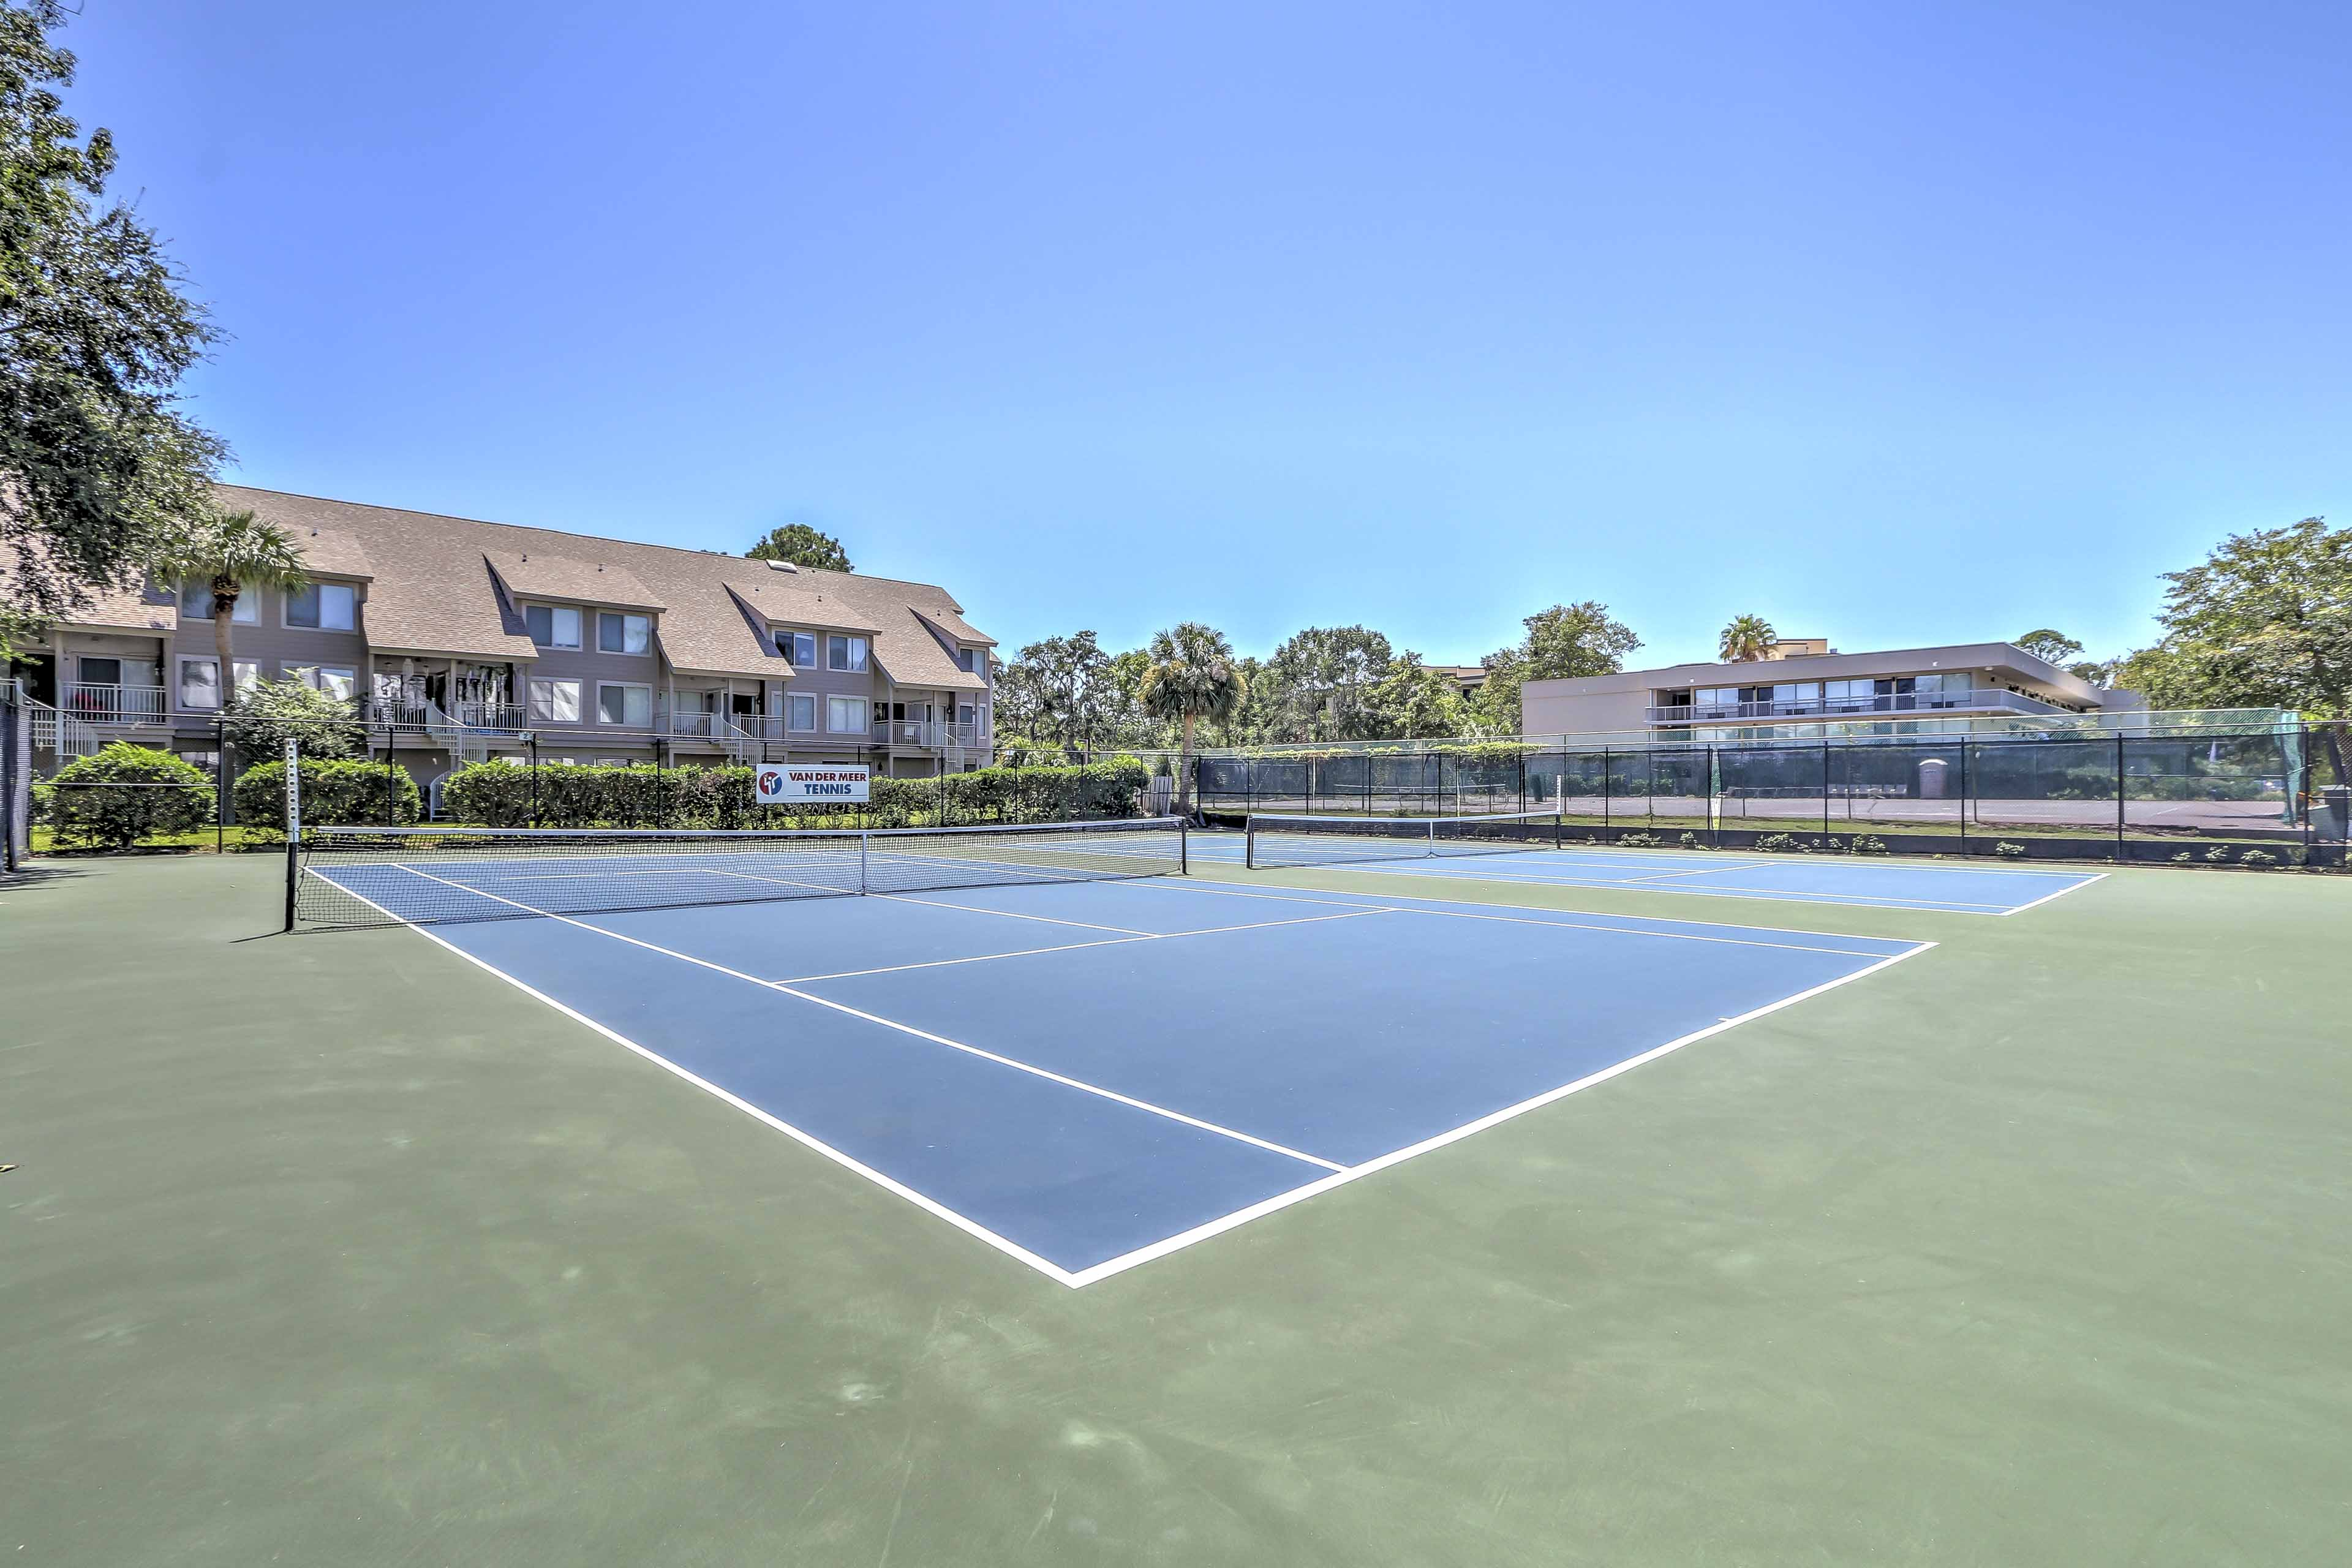 Challenge your companions to a game of tennis at the outdoor or indoor courts.